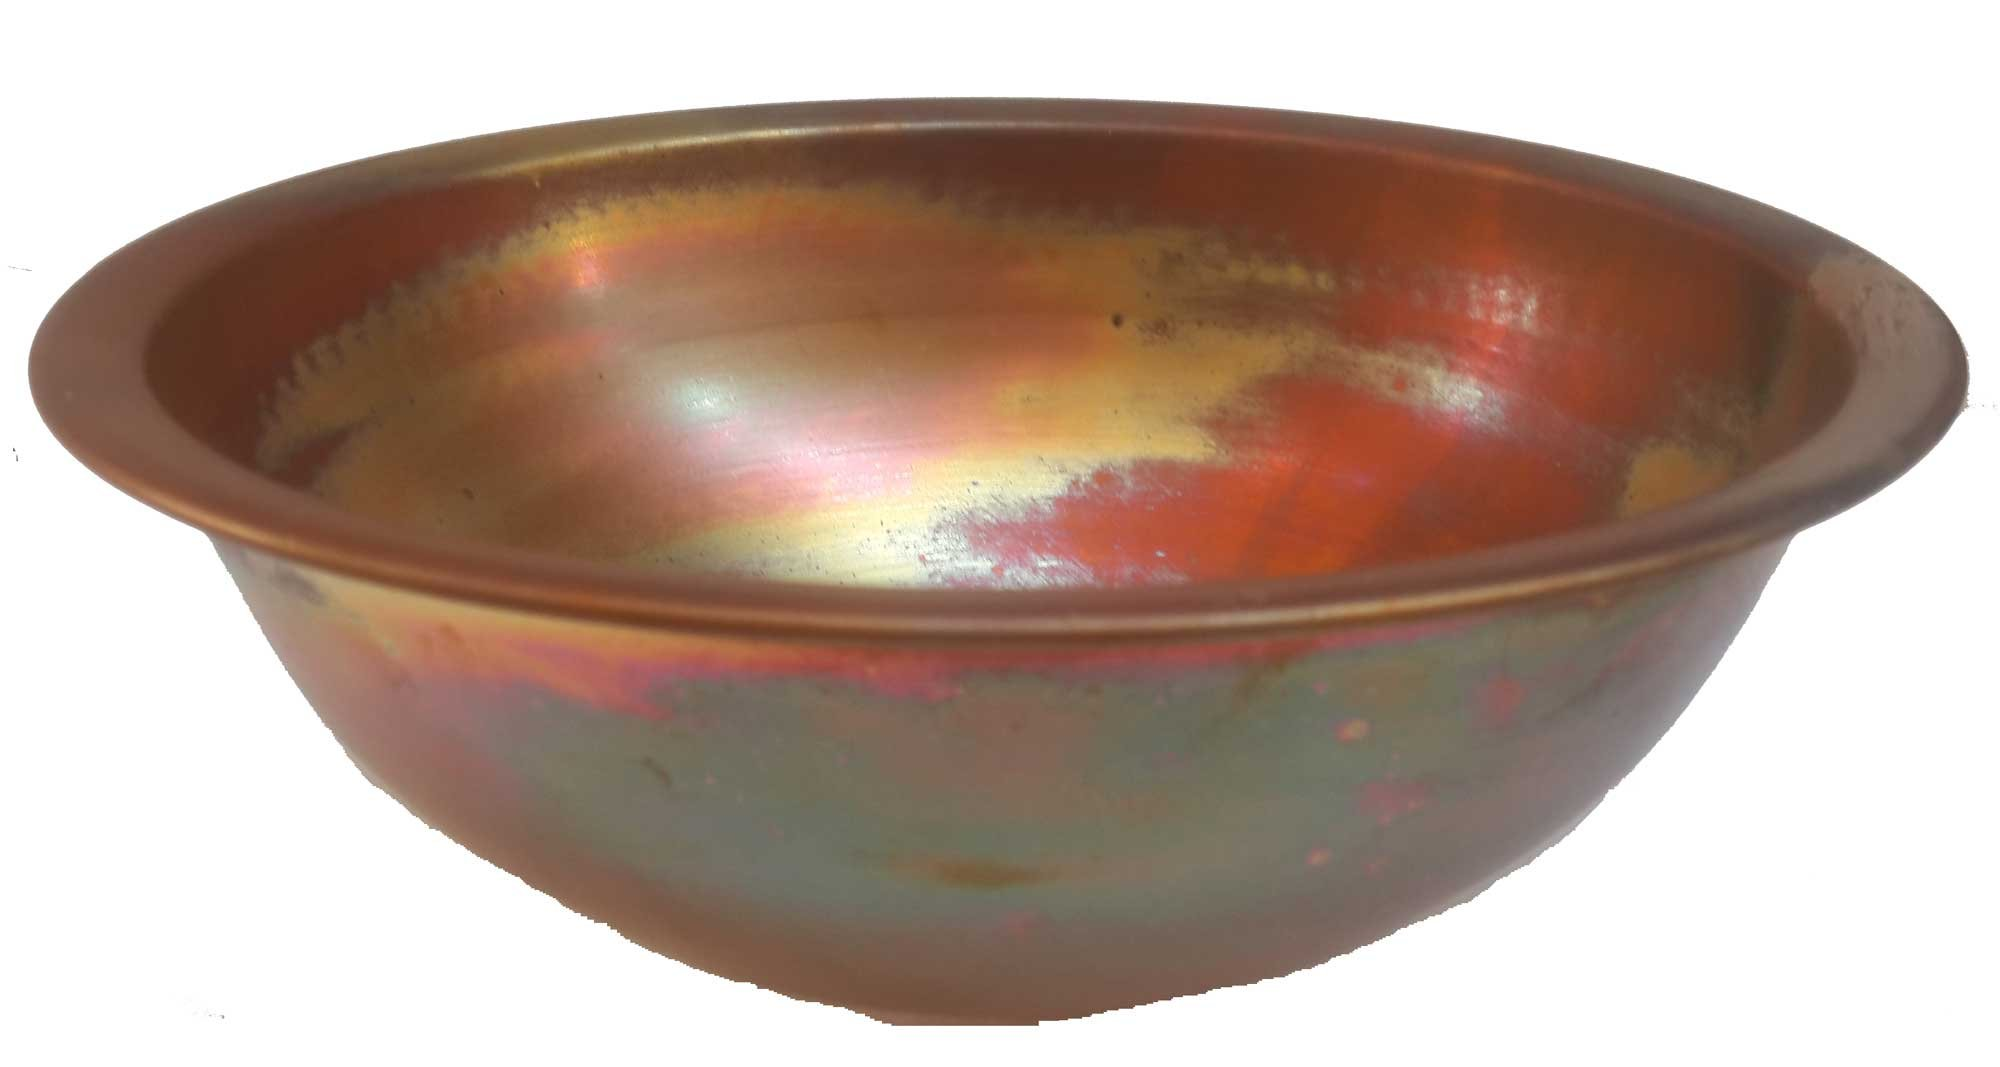 Egypt gift shops Satin Smooth Very Small Compact Copper Bowl Basin Toilet Bathroom Sink Lavatory Cabin Motor Van Caravan Portable Home Renovation by Egypt gift shops (Image #5)